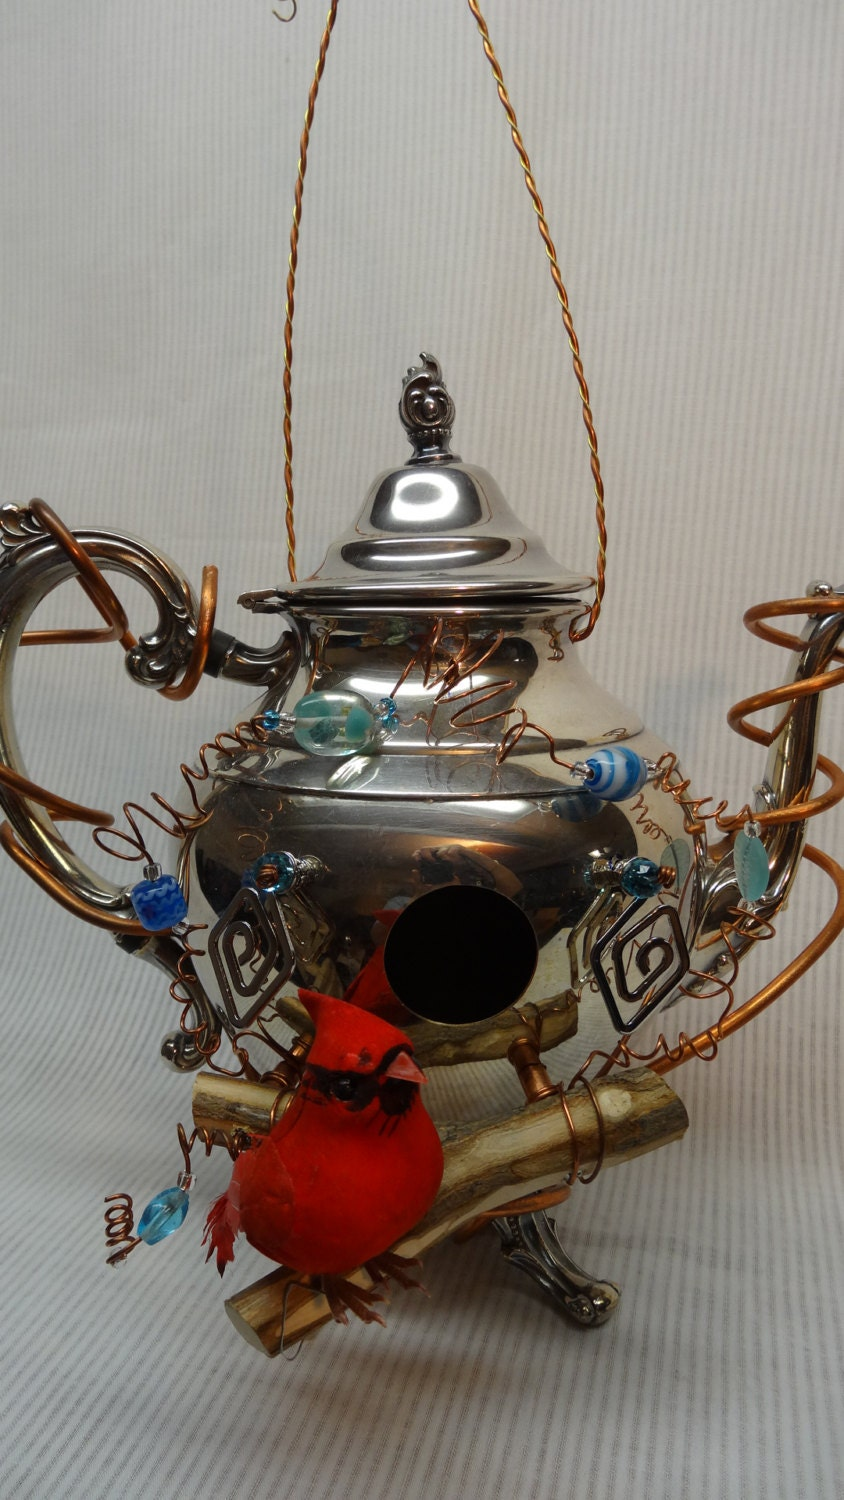 Whimsical Handmade Recycled Silver Plated Teapot Birdhouse